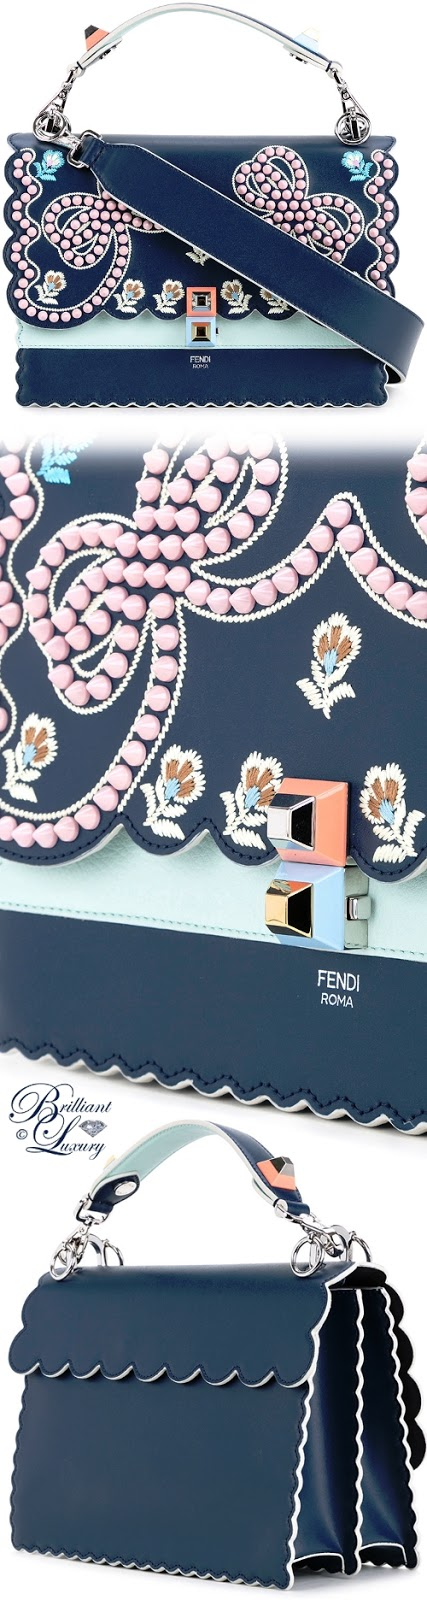 Brilliant Luxury ♦ Fendi Kan I Shoulder Bag